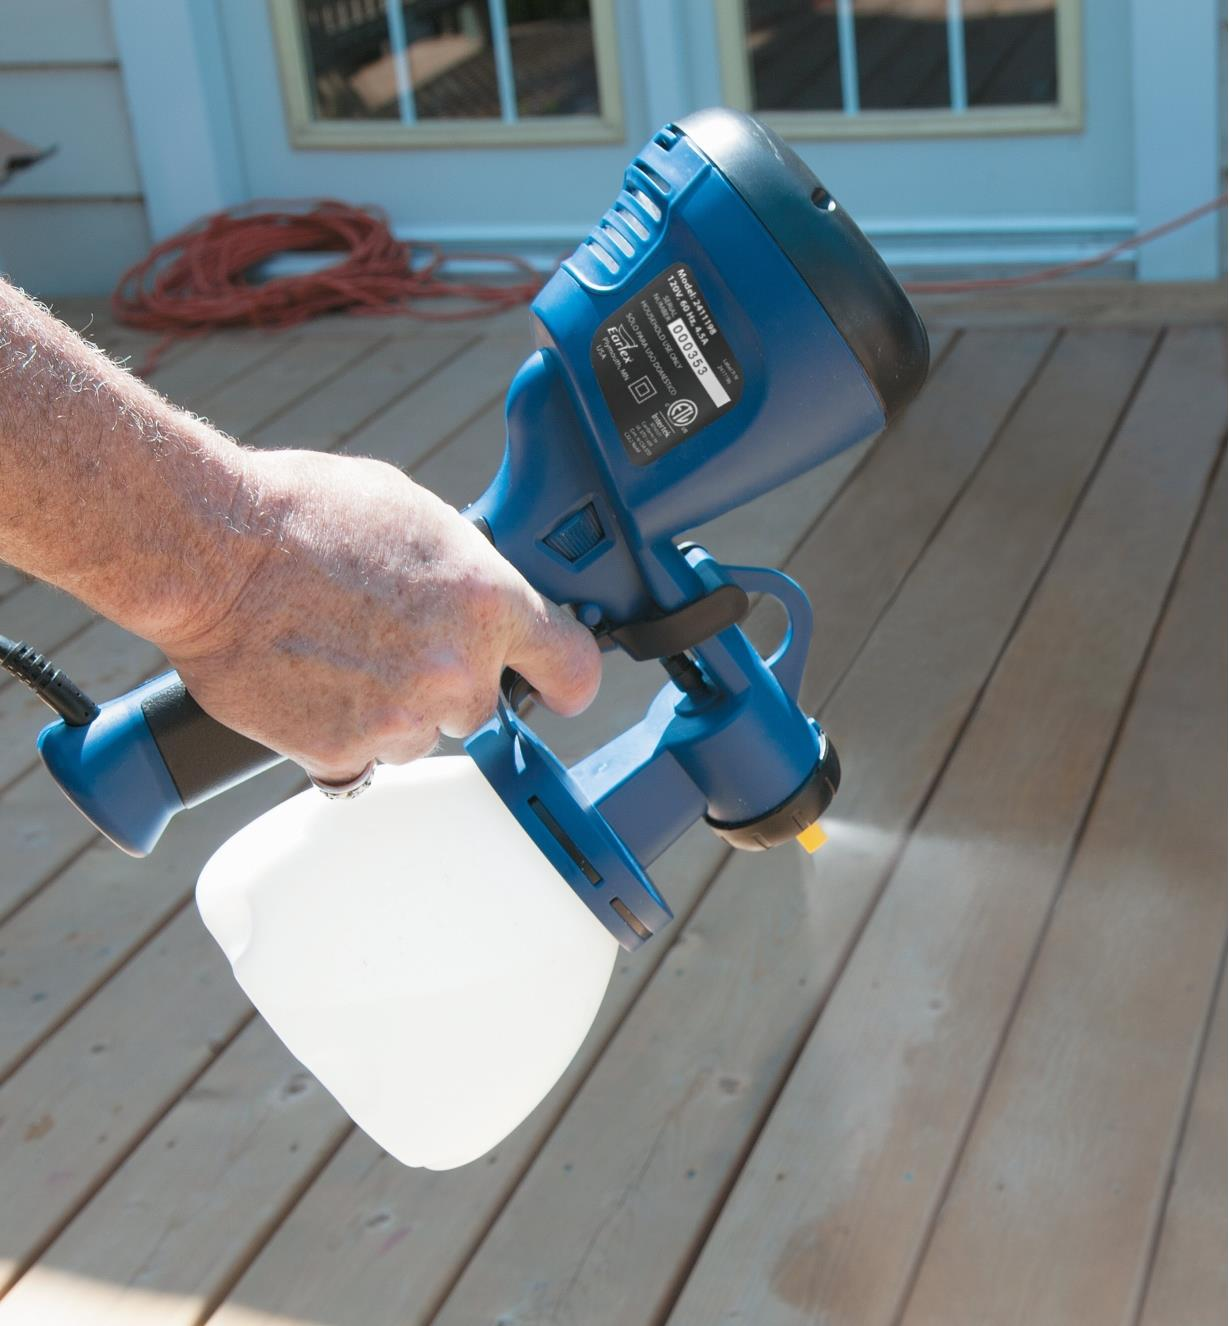 Speaking a deck with an All-in-One HVLP Sprayer